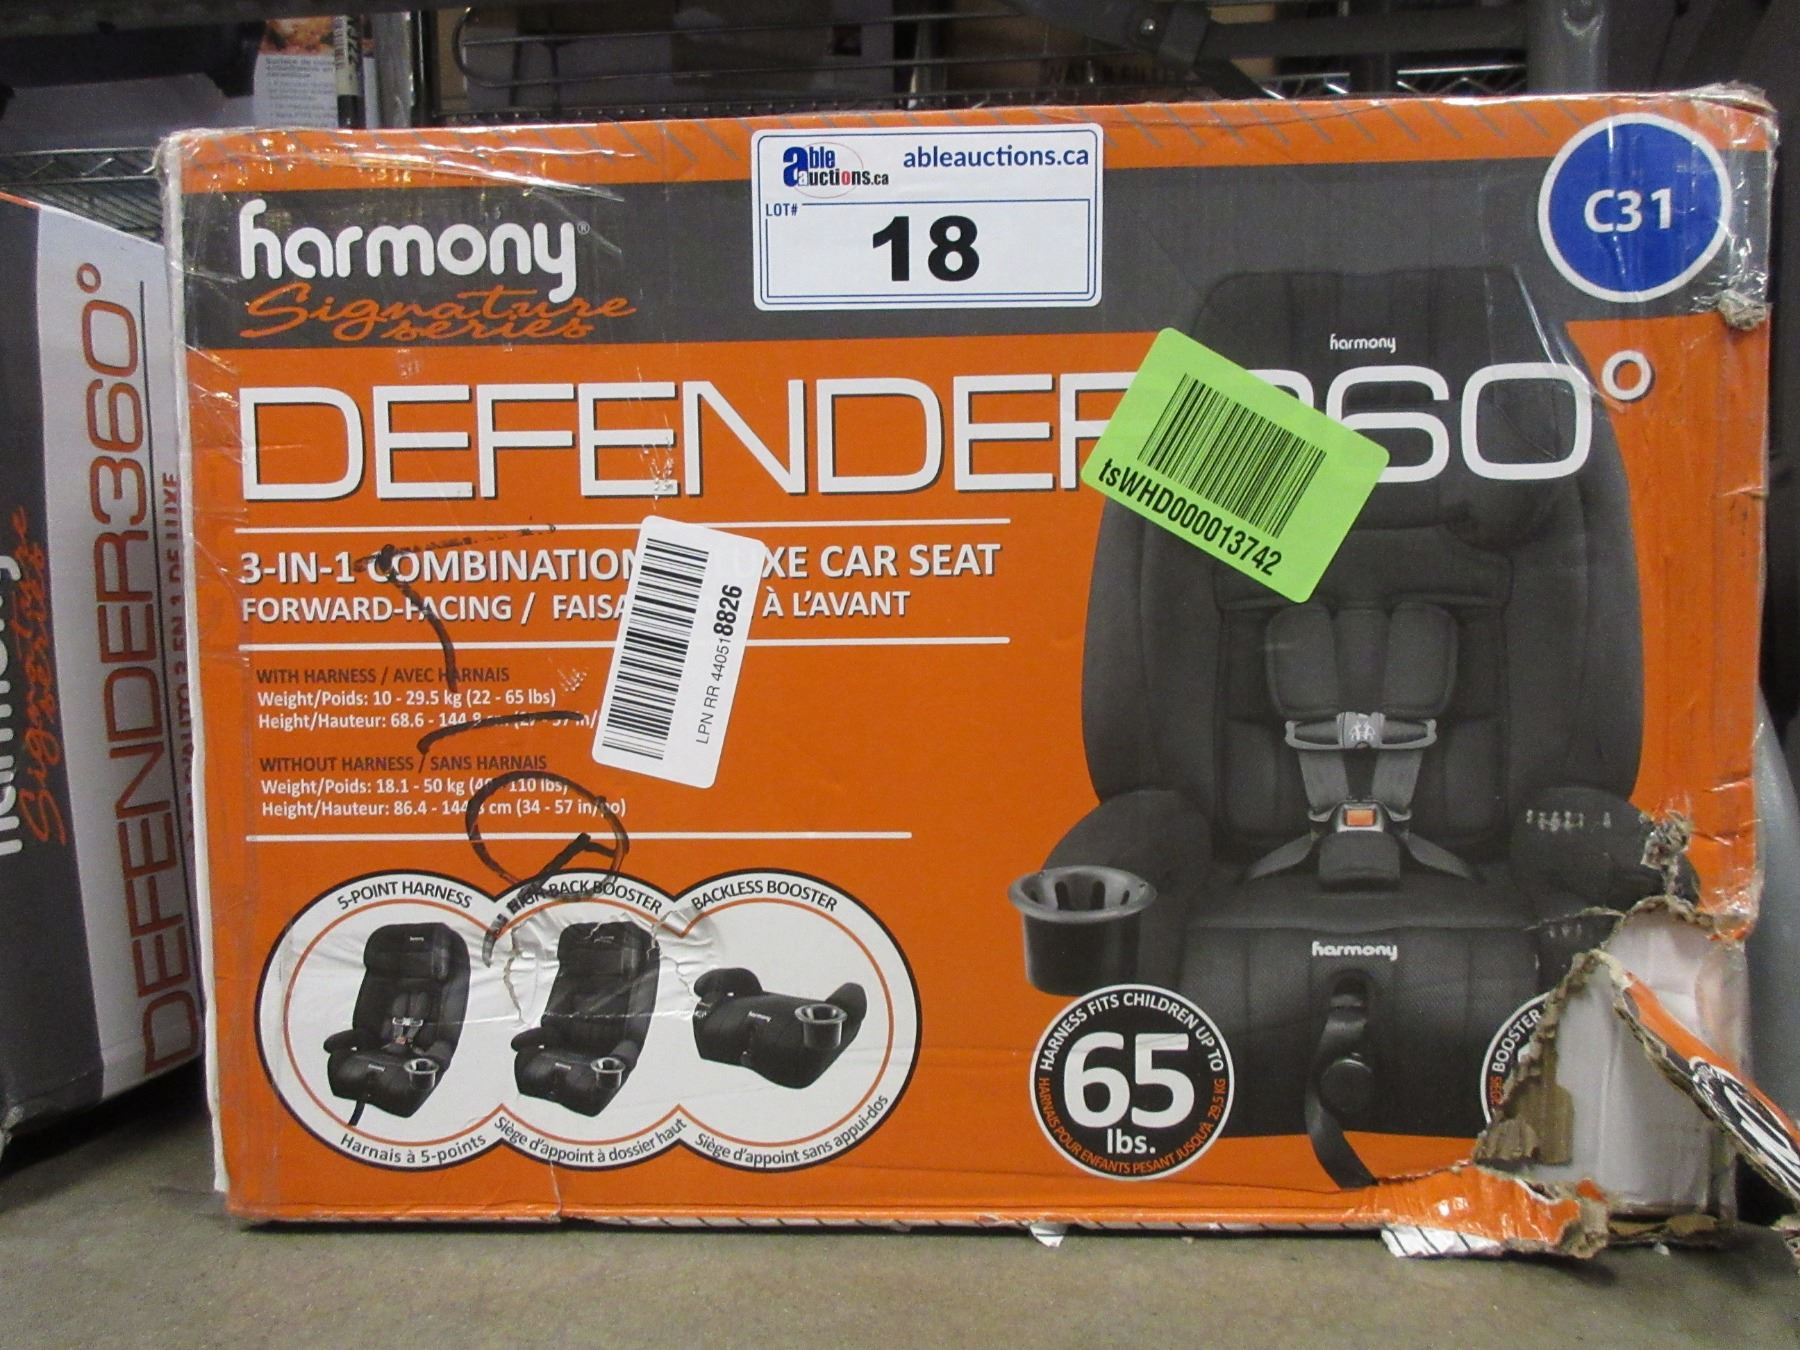 Image 1 HARMONY DEFENDER 360 3 IN COMBINATION DELUXE CAR SEAT